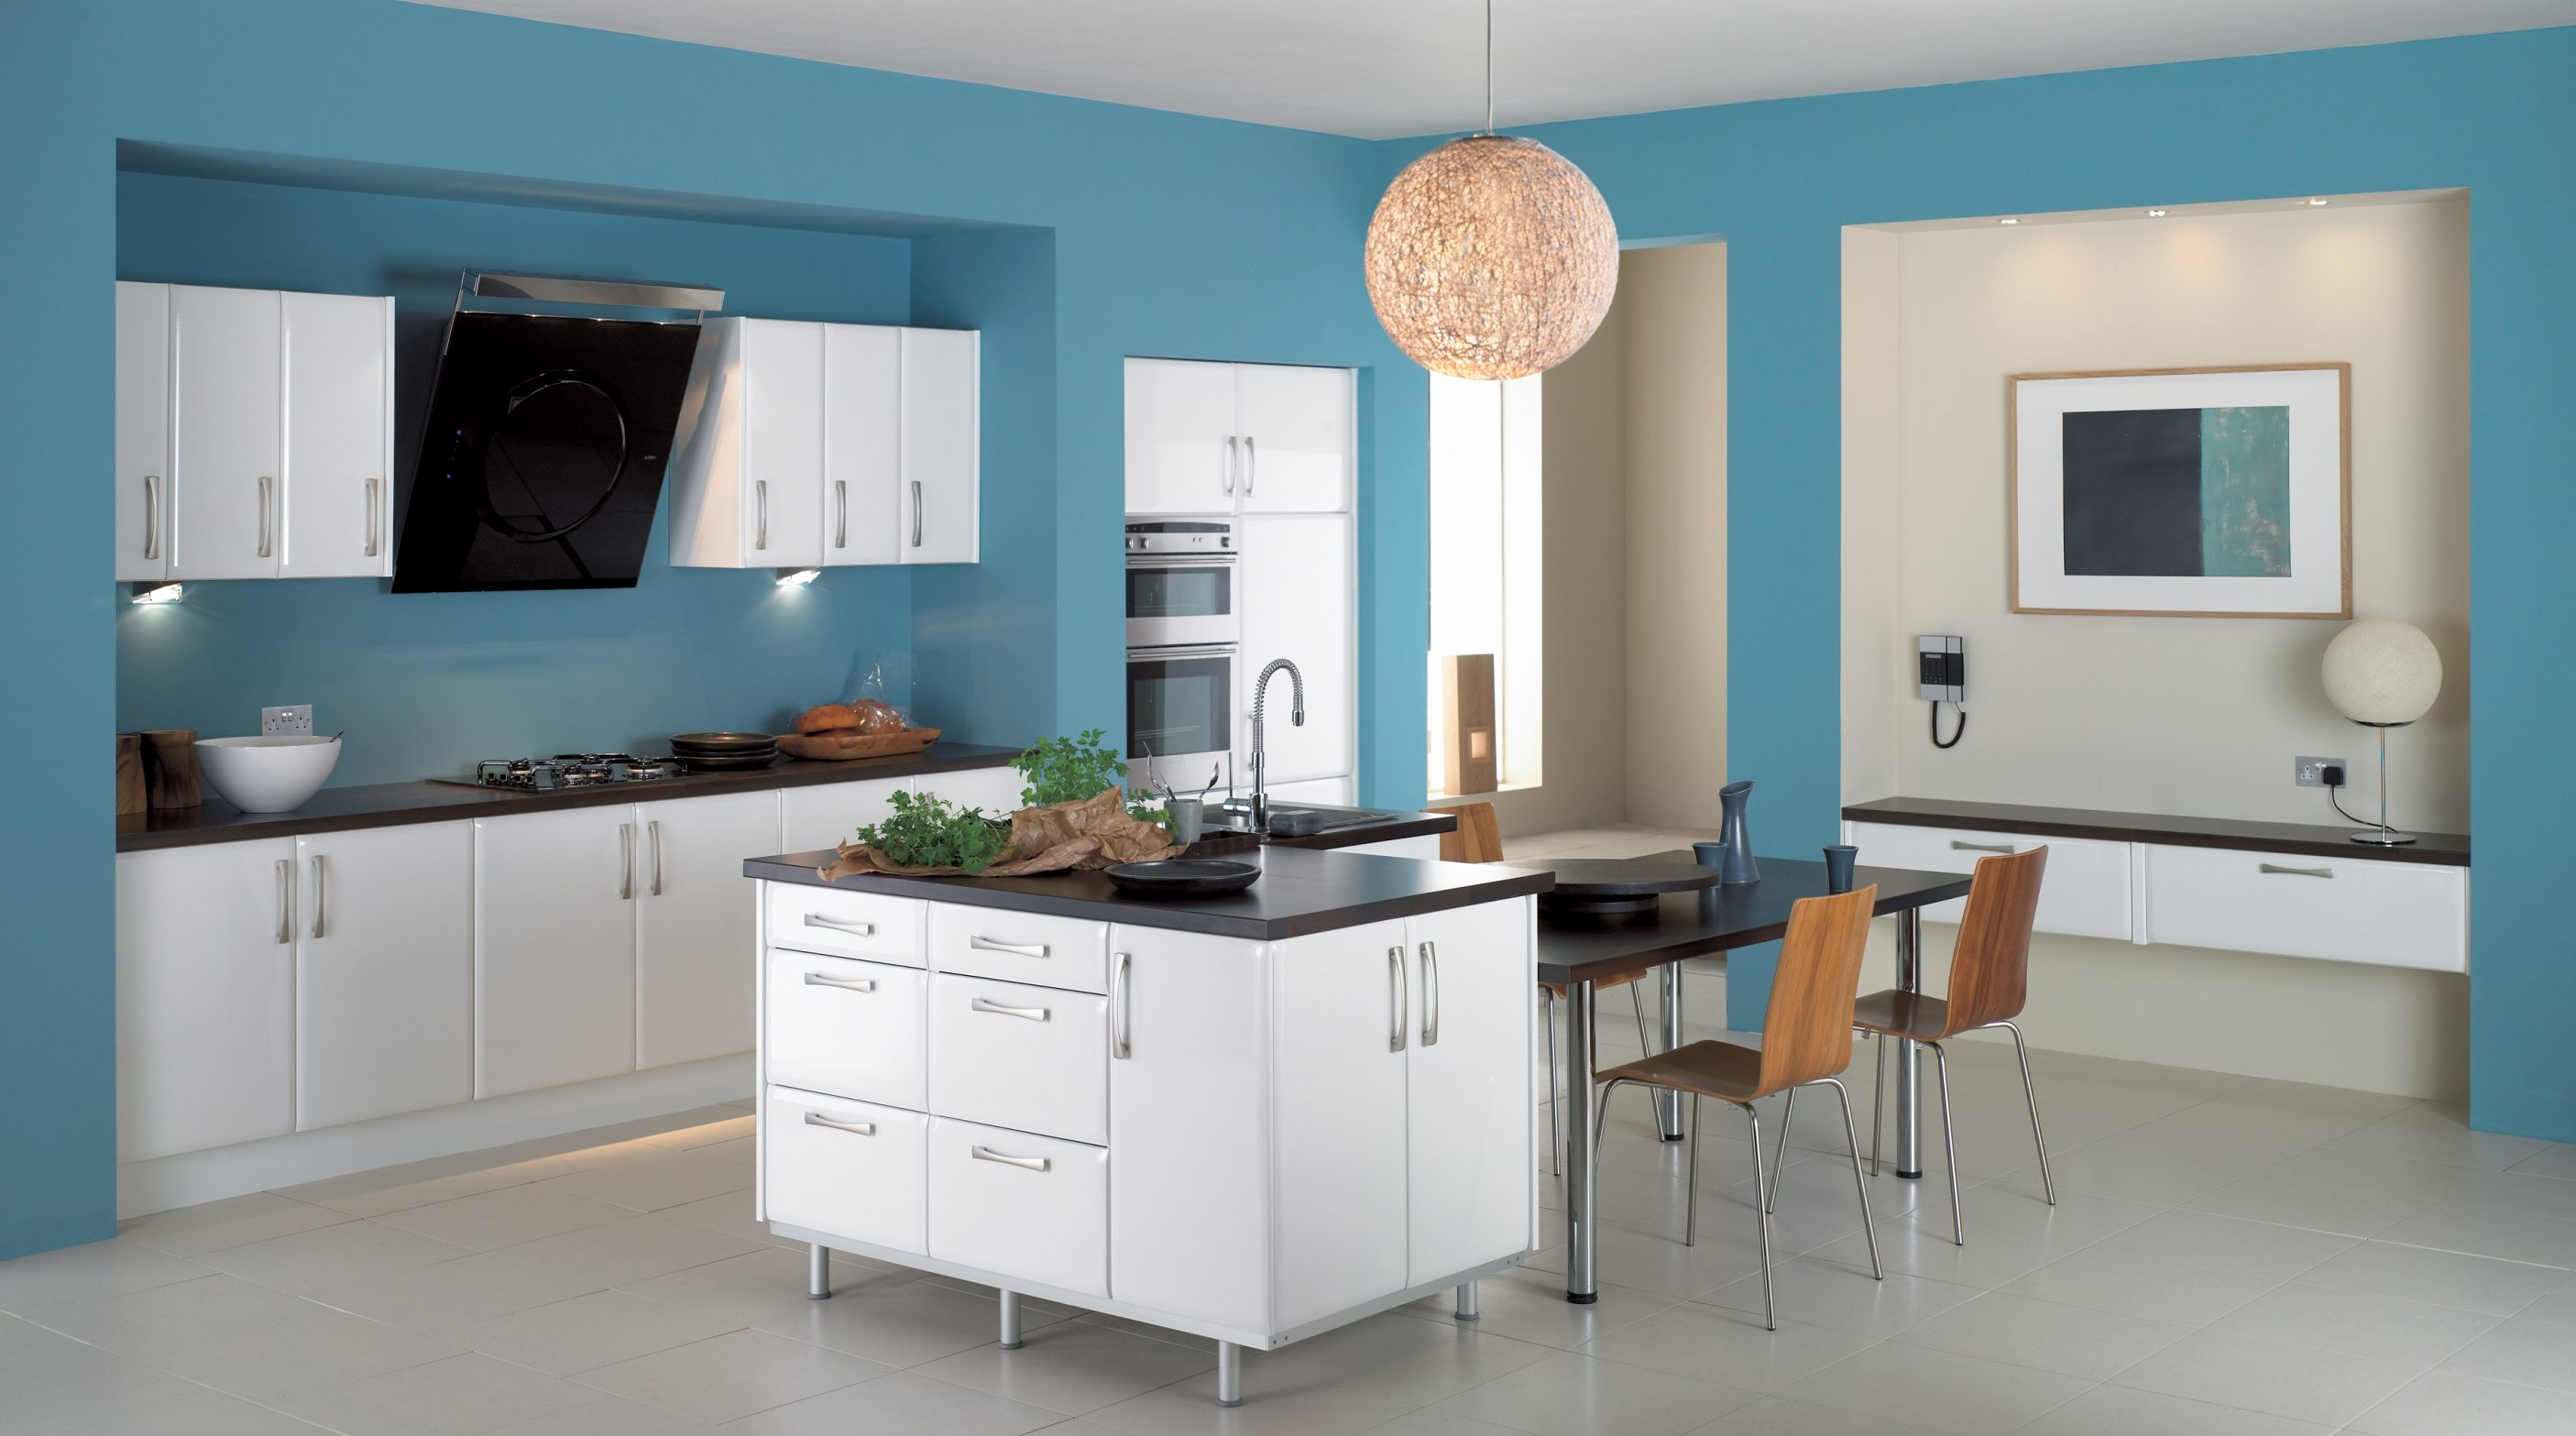 Blue Kitchens Custom Of Blue Kitchen Interior Design Ideas Photos